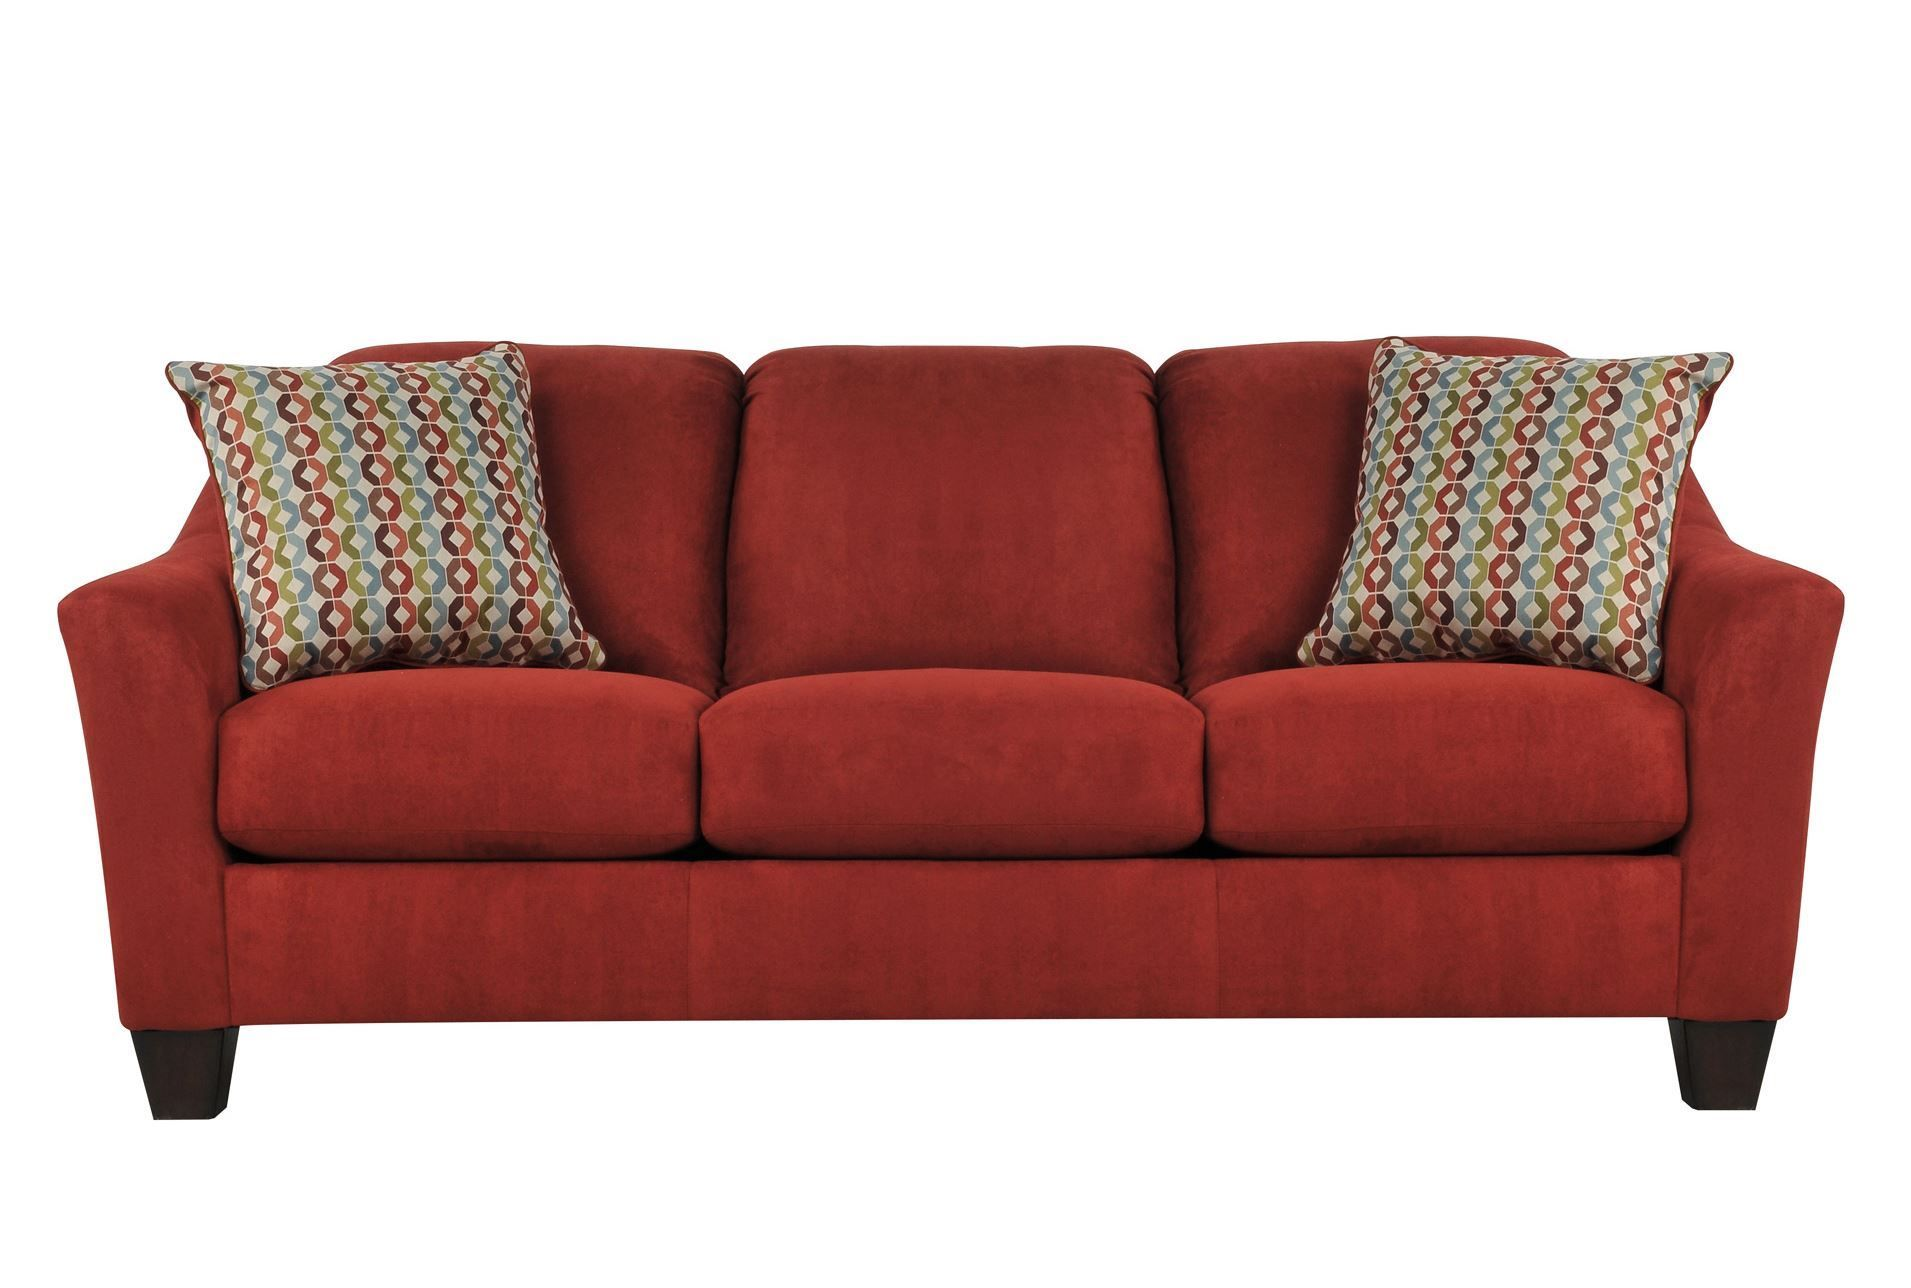 Hannin Spice Sofa This Would Look So Great With The Color Scheme In Our Apartments Furniture